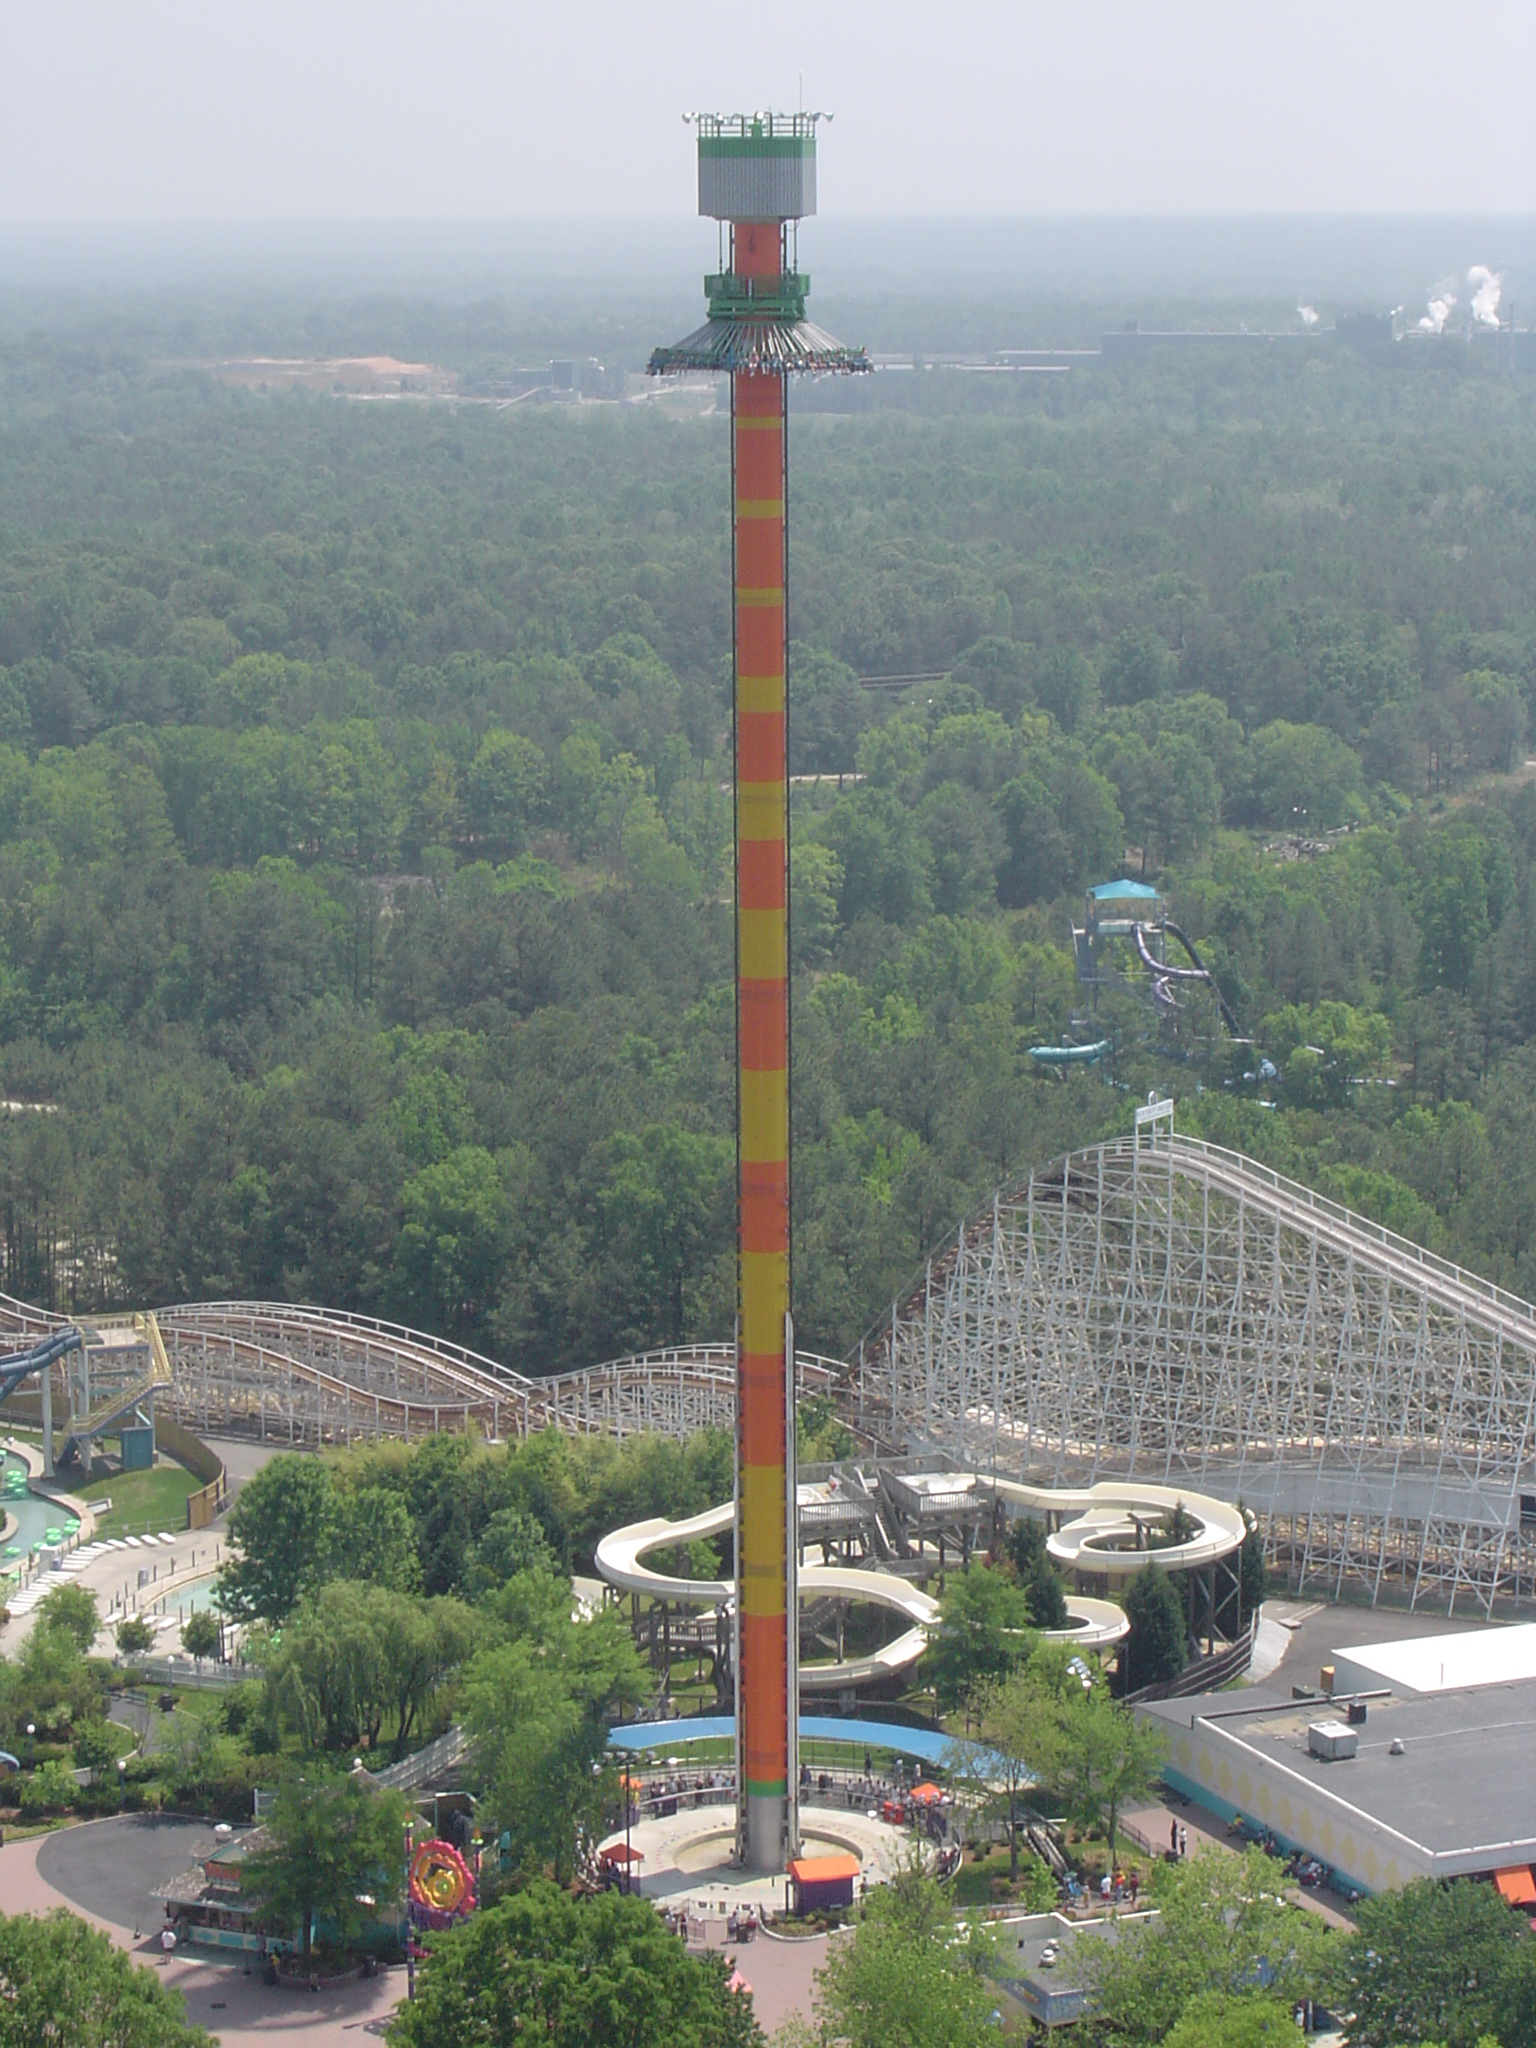 Free stock photo 752 drop tower 432 jpg freeimageslive